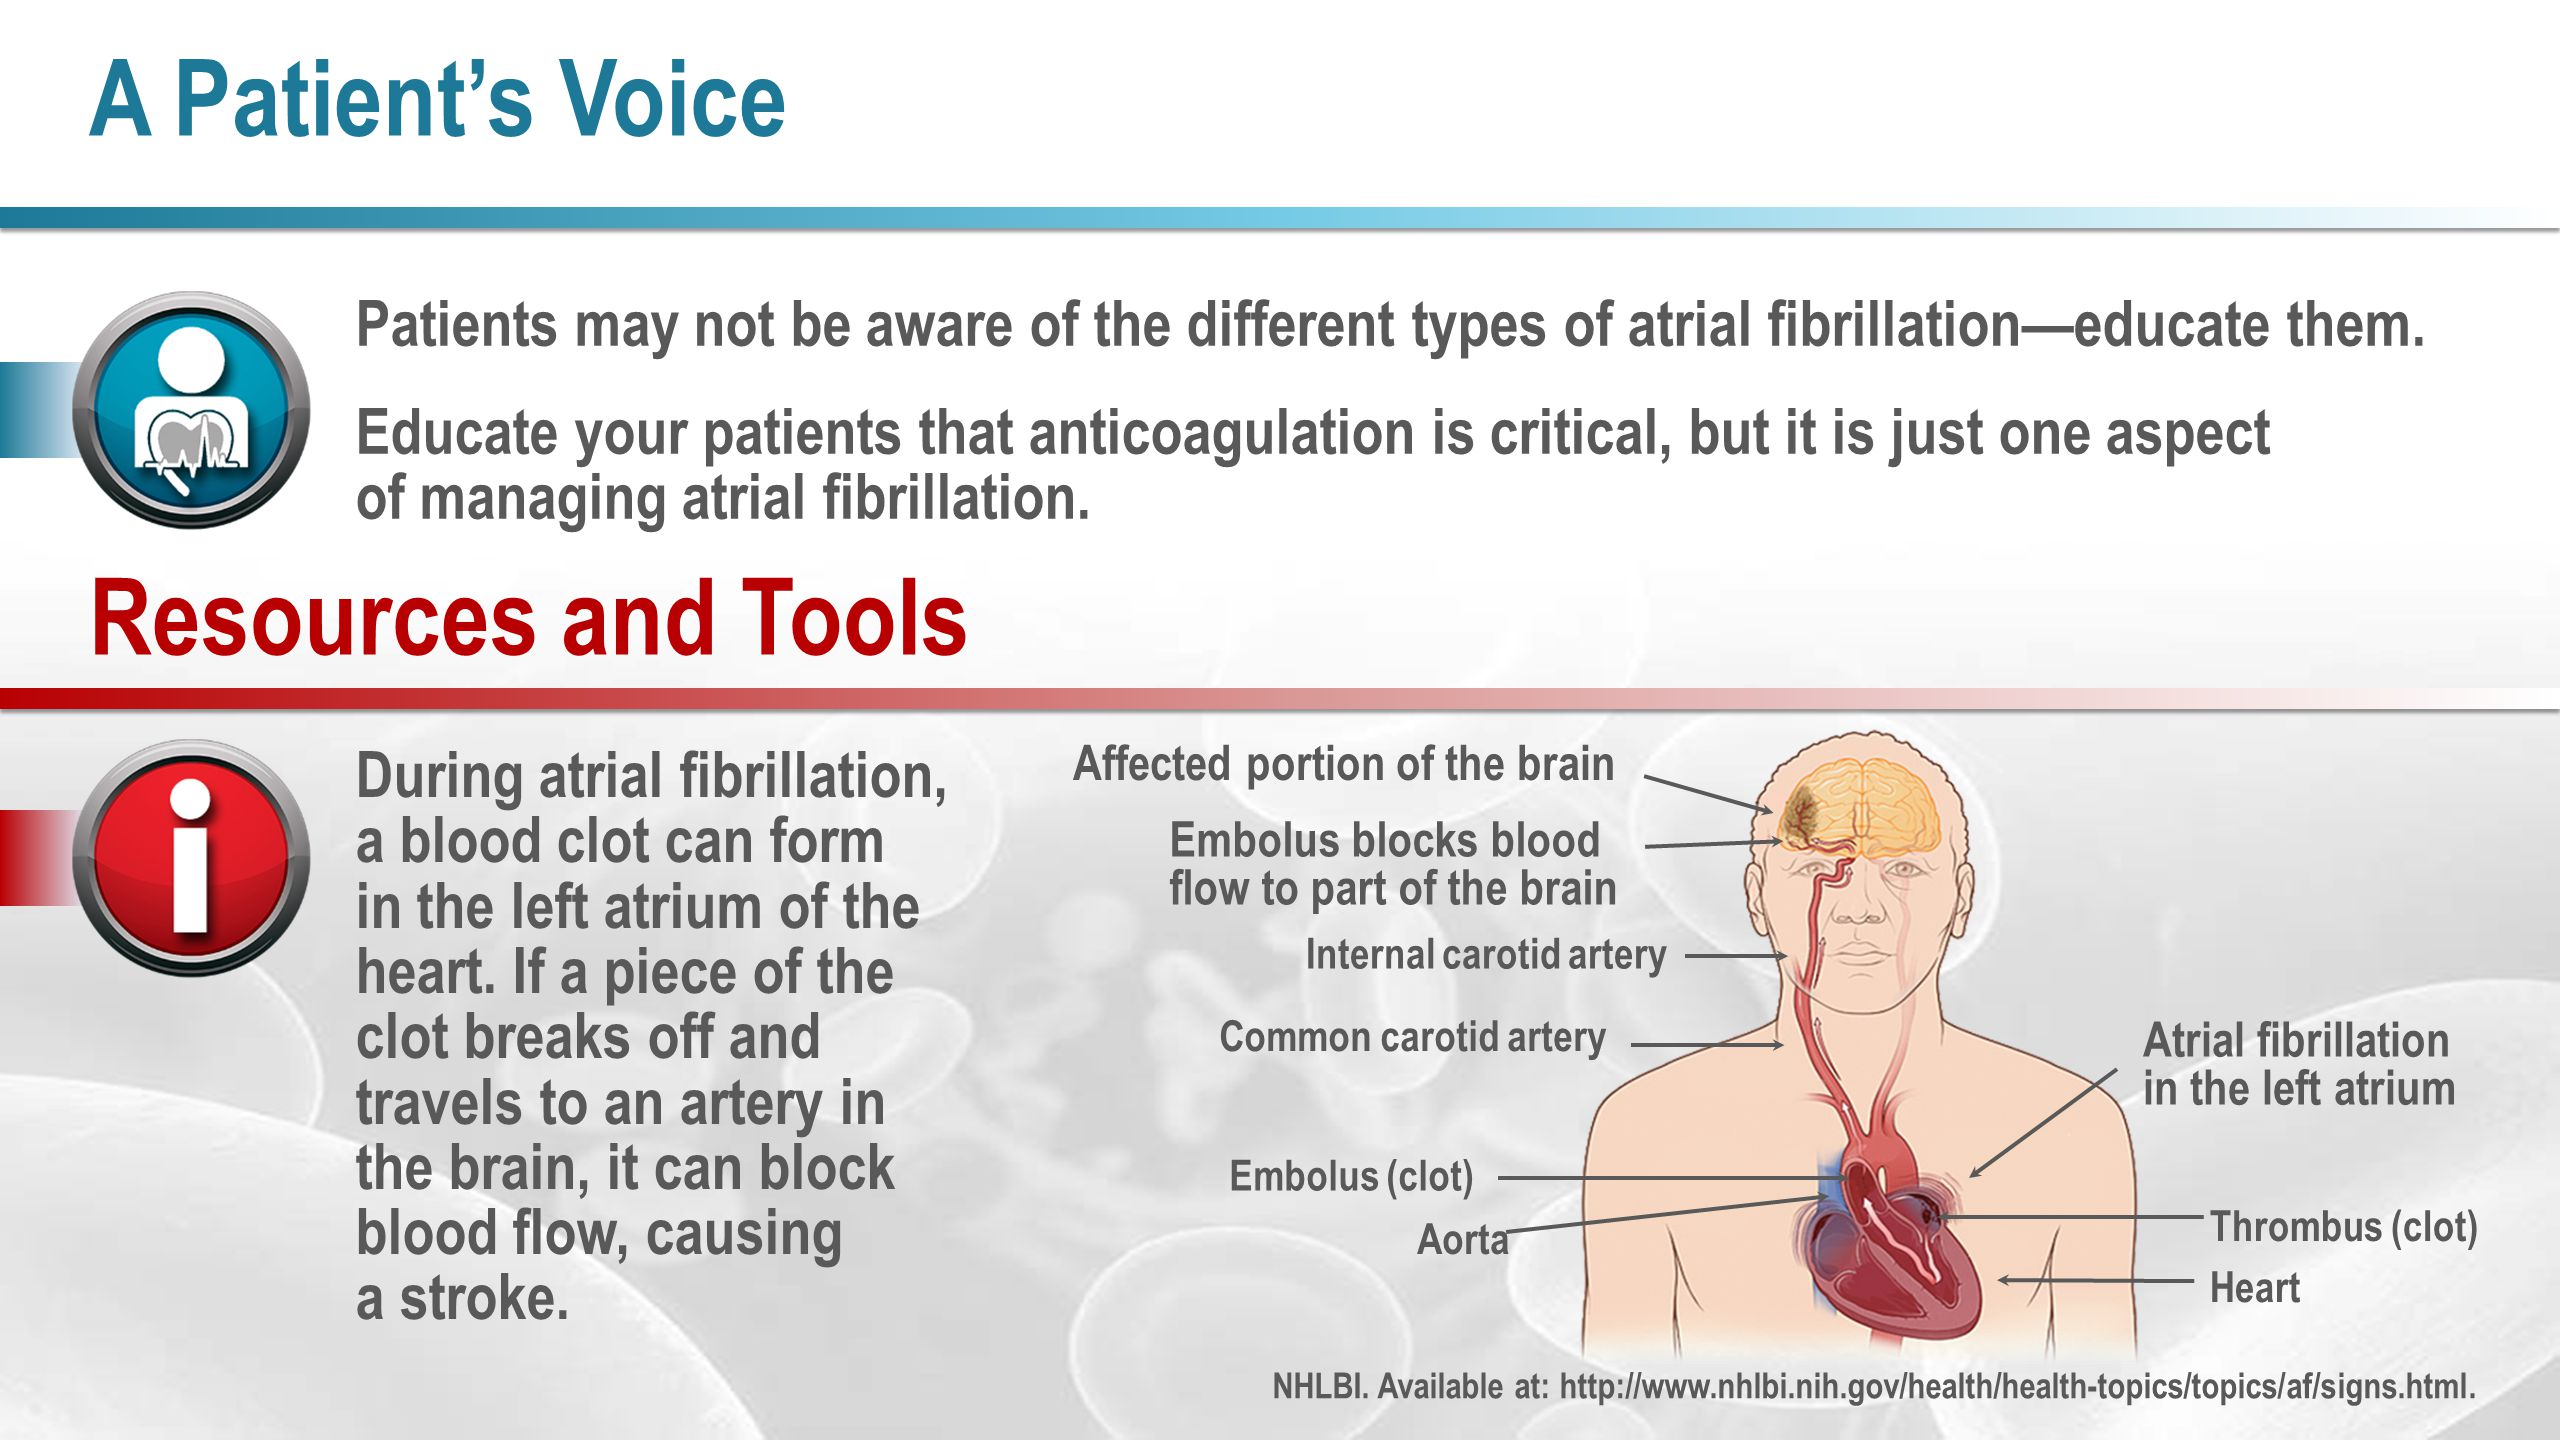 A Patient's Voice During atrial fibrillation, a blood clot can form in the left atrium of the heart.